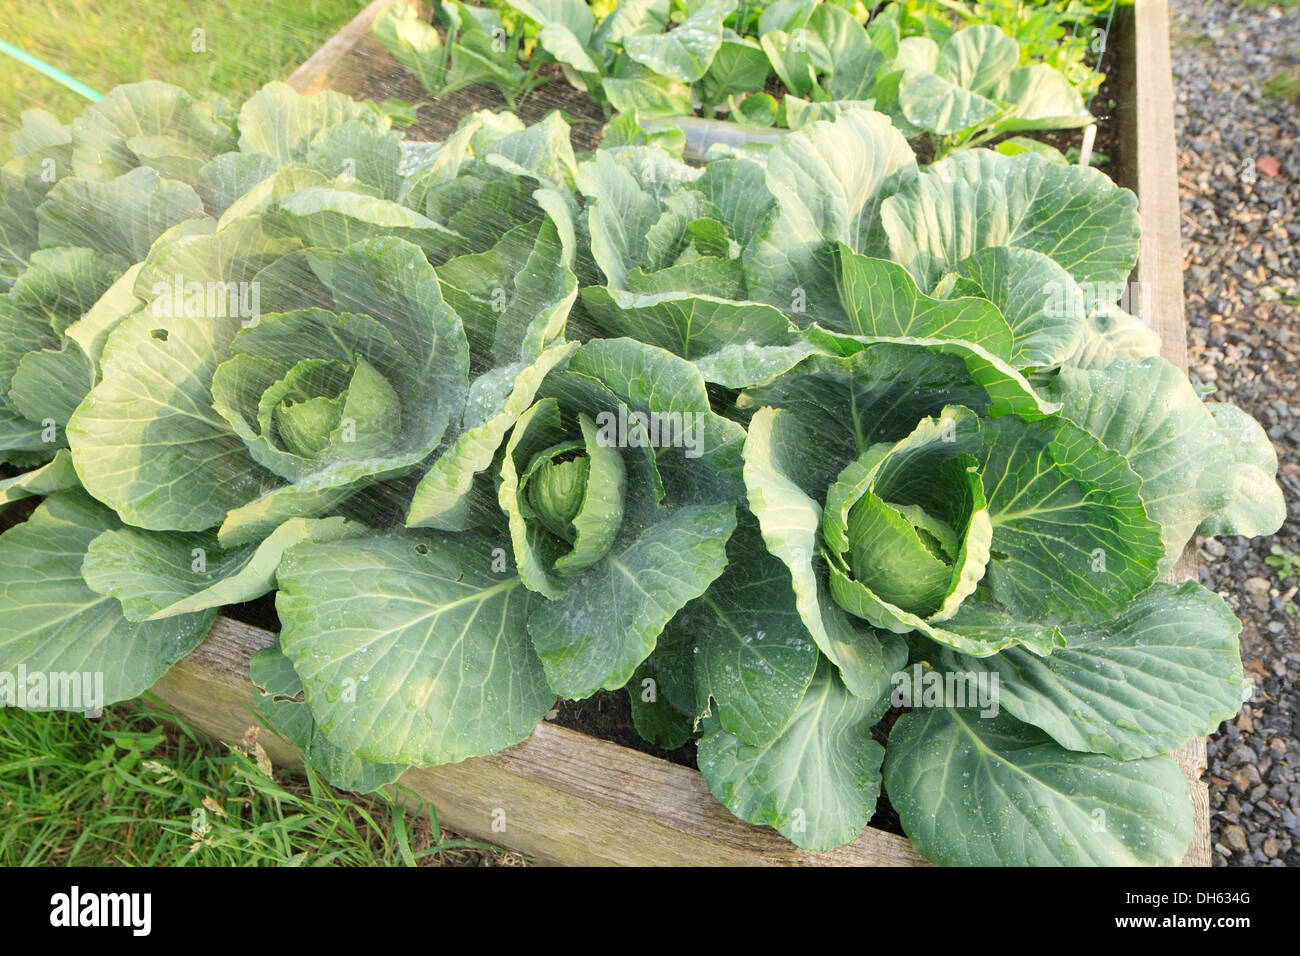 Watering Homegrown vegetables - Stock Image